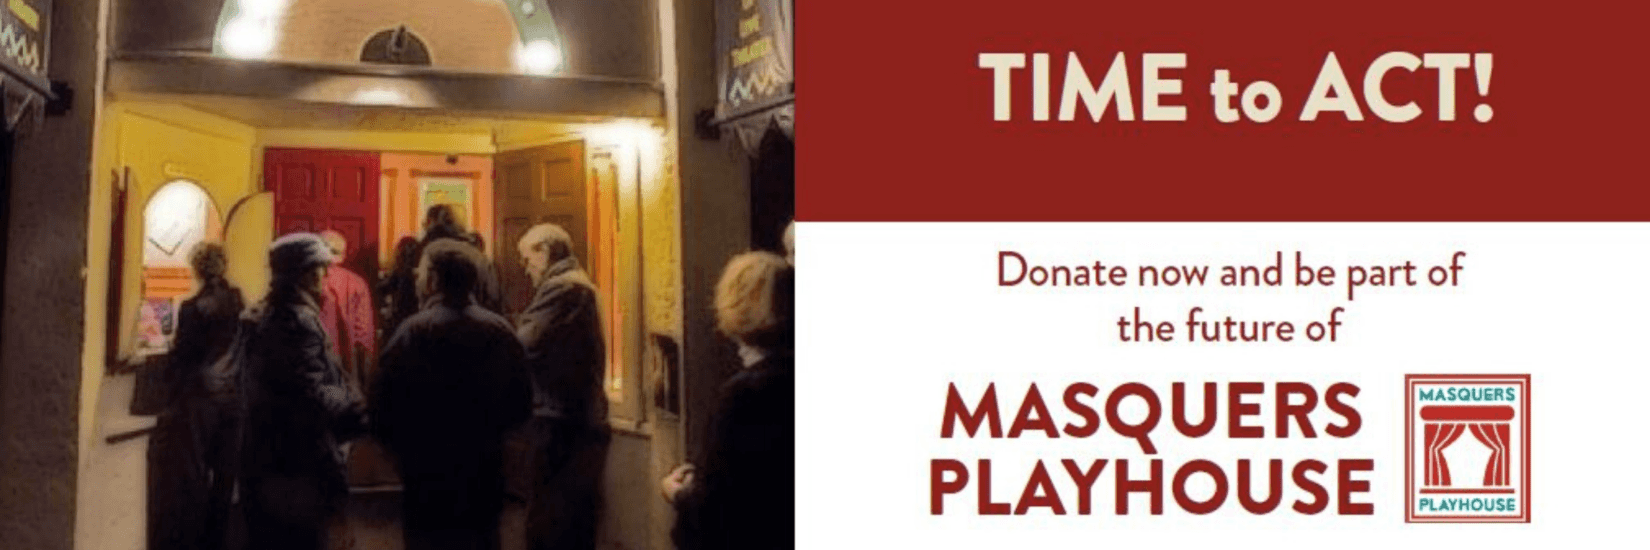 Make a donation to Masquers PlayHouse Campaign, November 2019